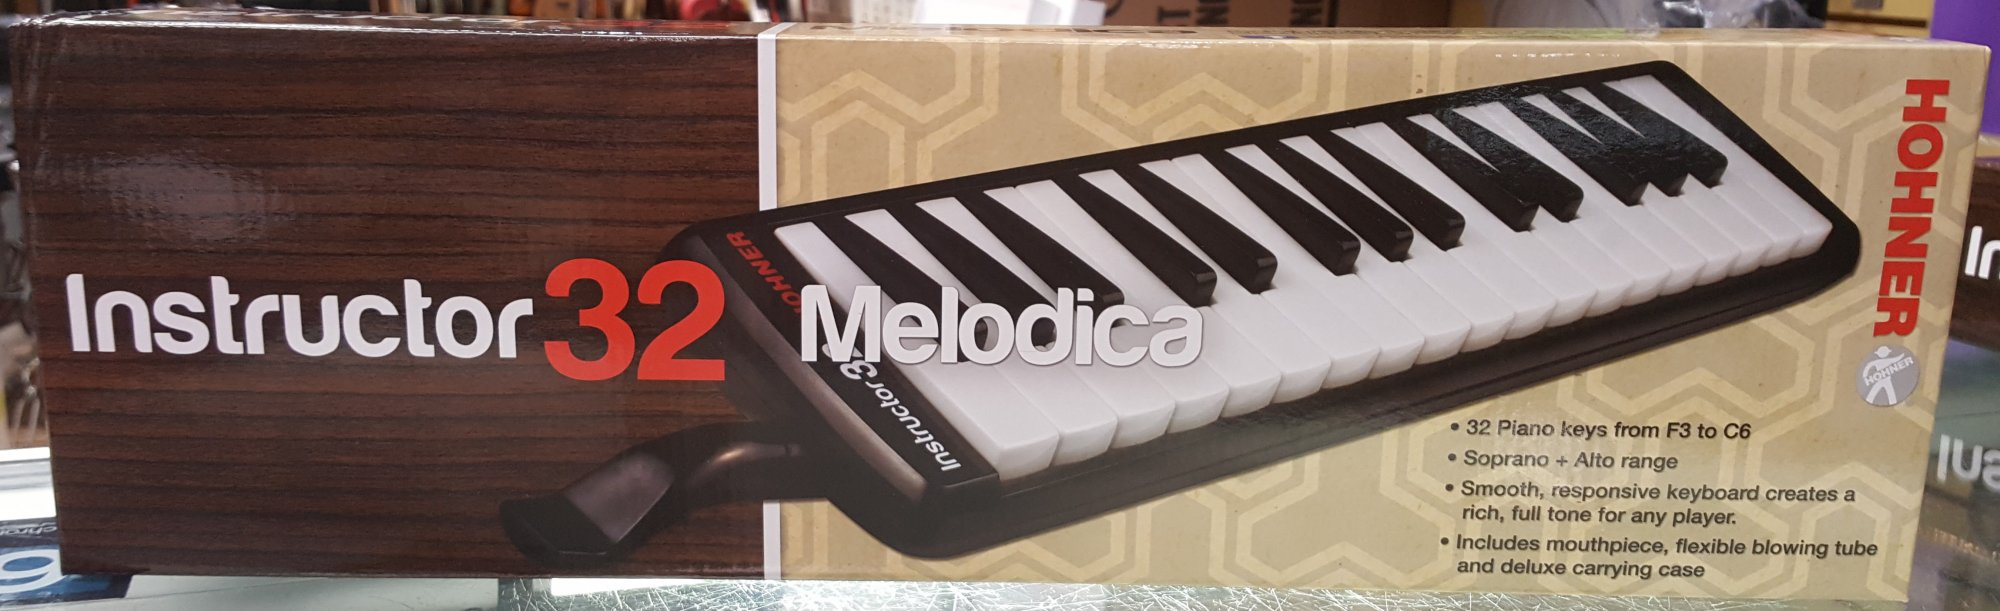 Hohner Instructor 32B Melodica